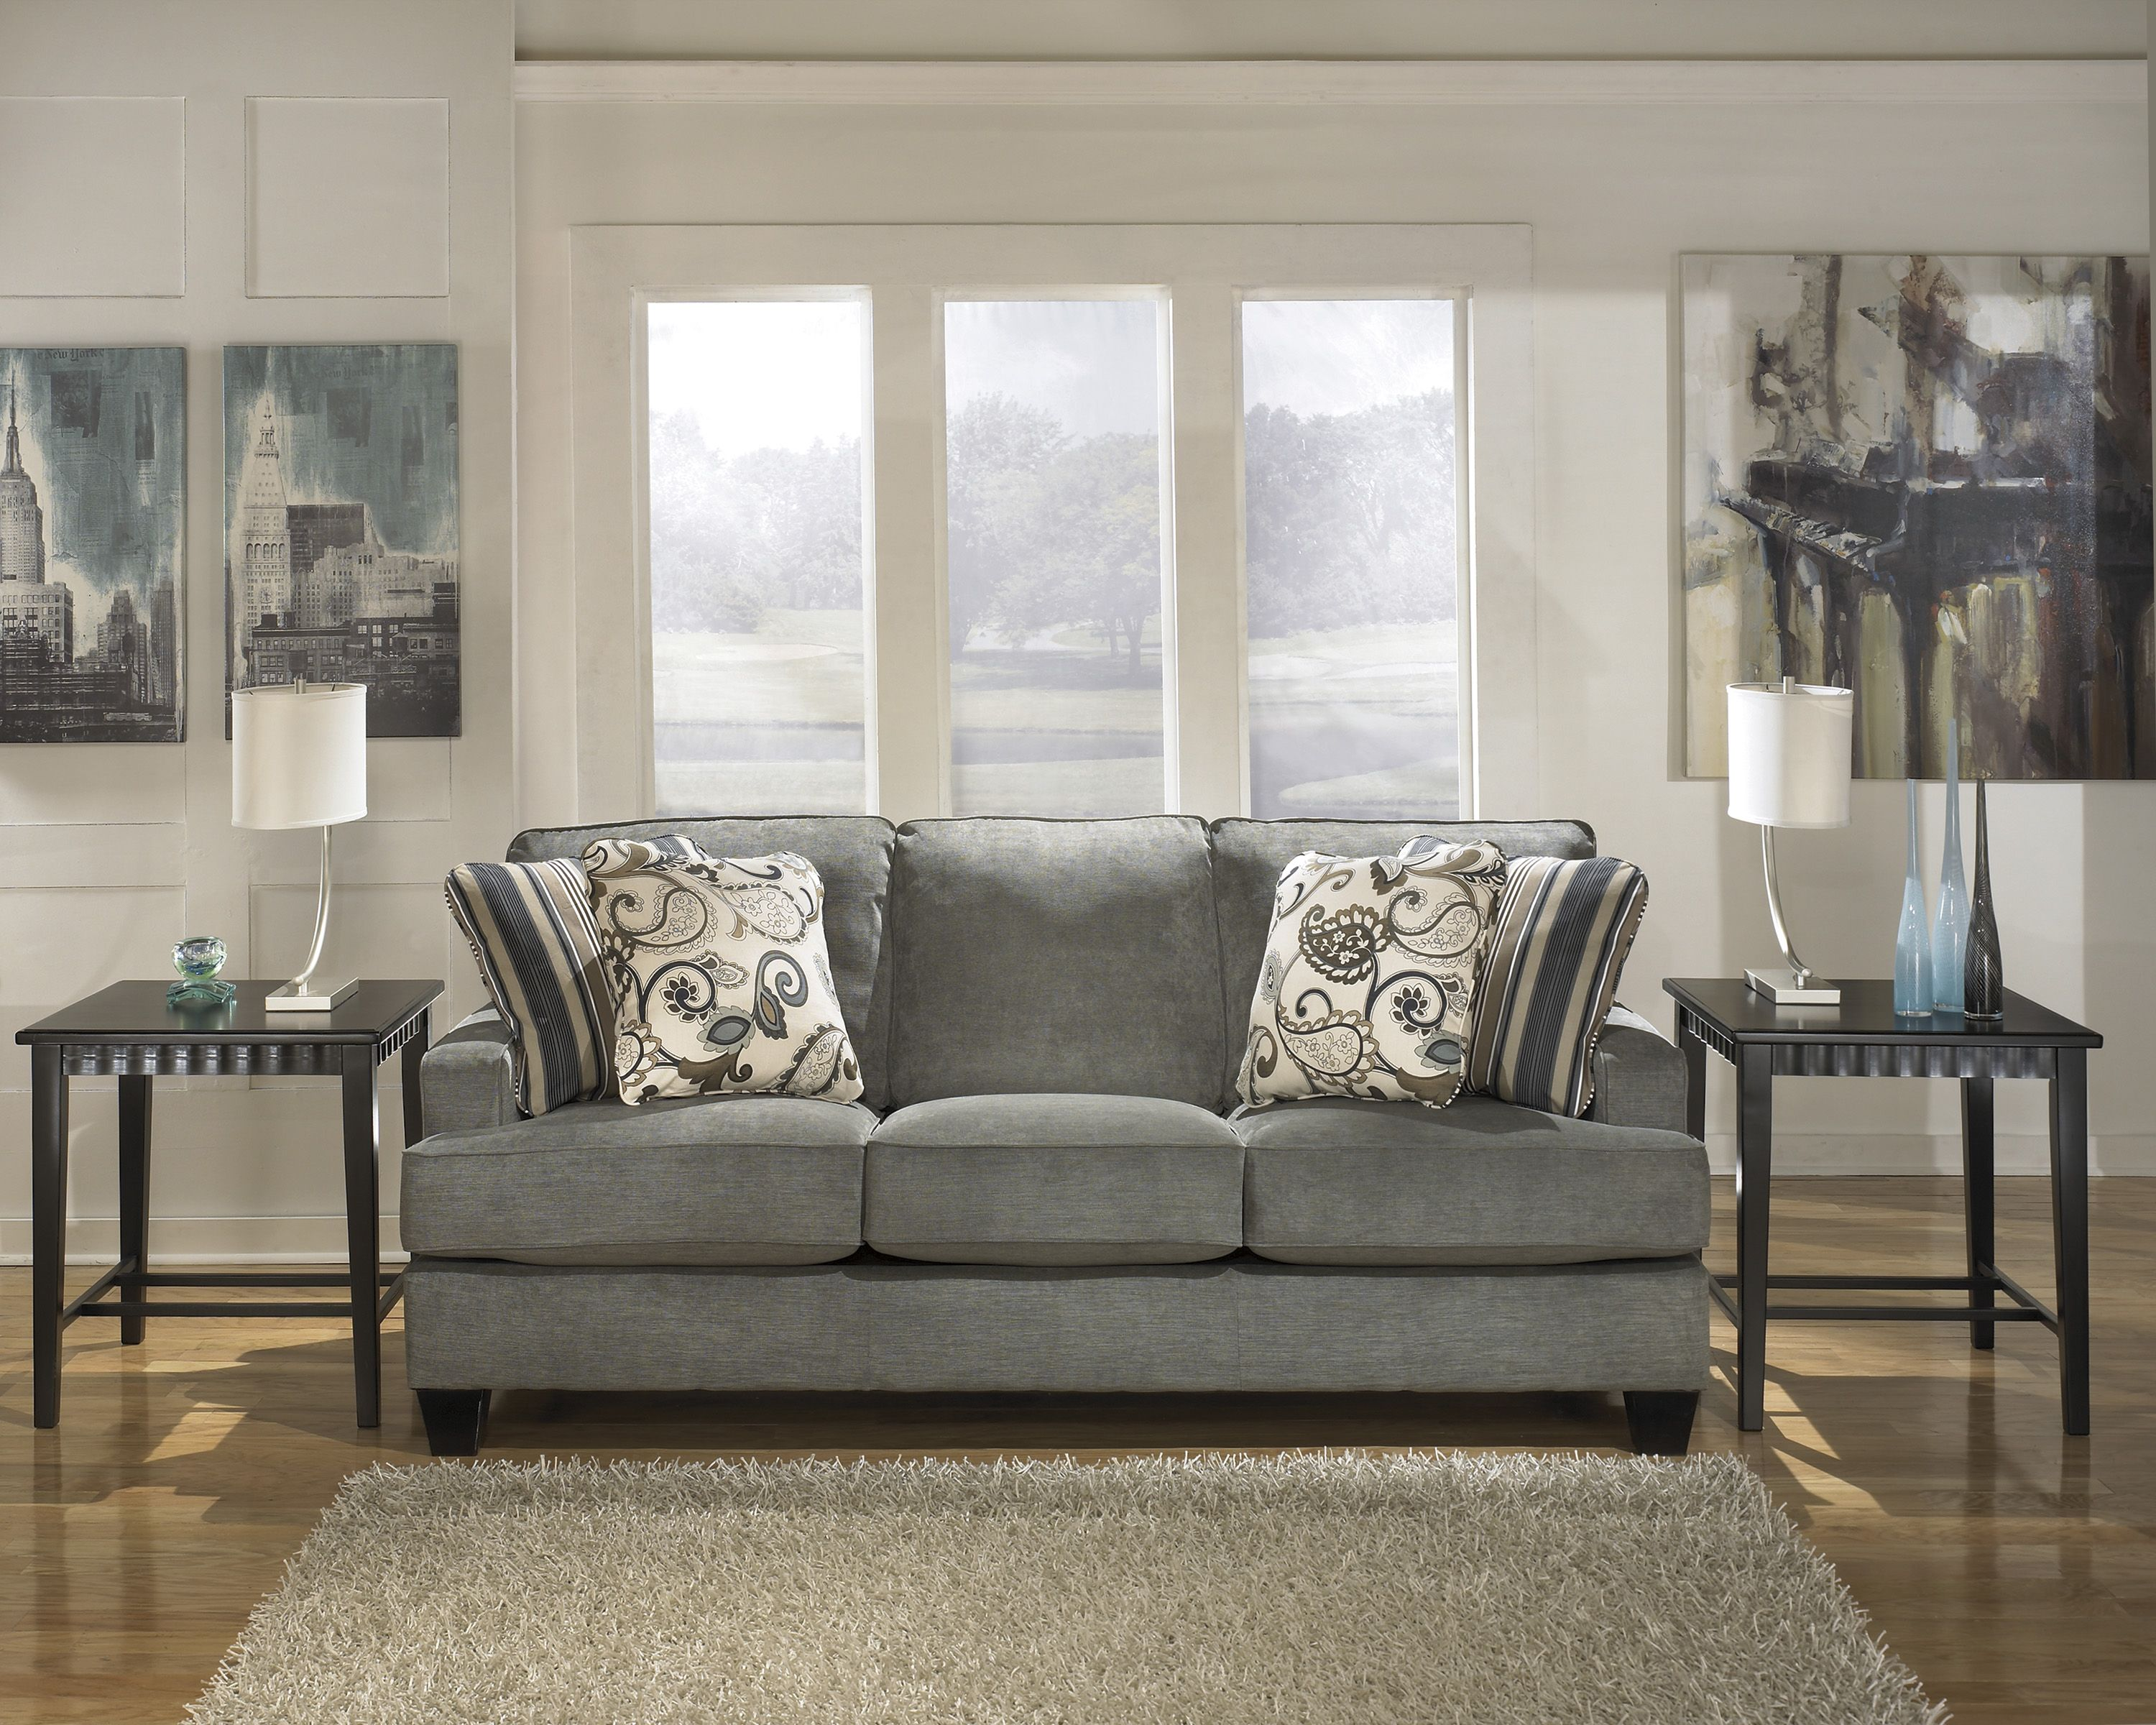 The Principles of Finding the Perfect Small Scale Sofa for ...